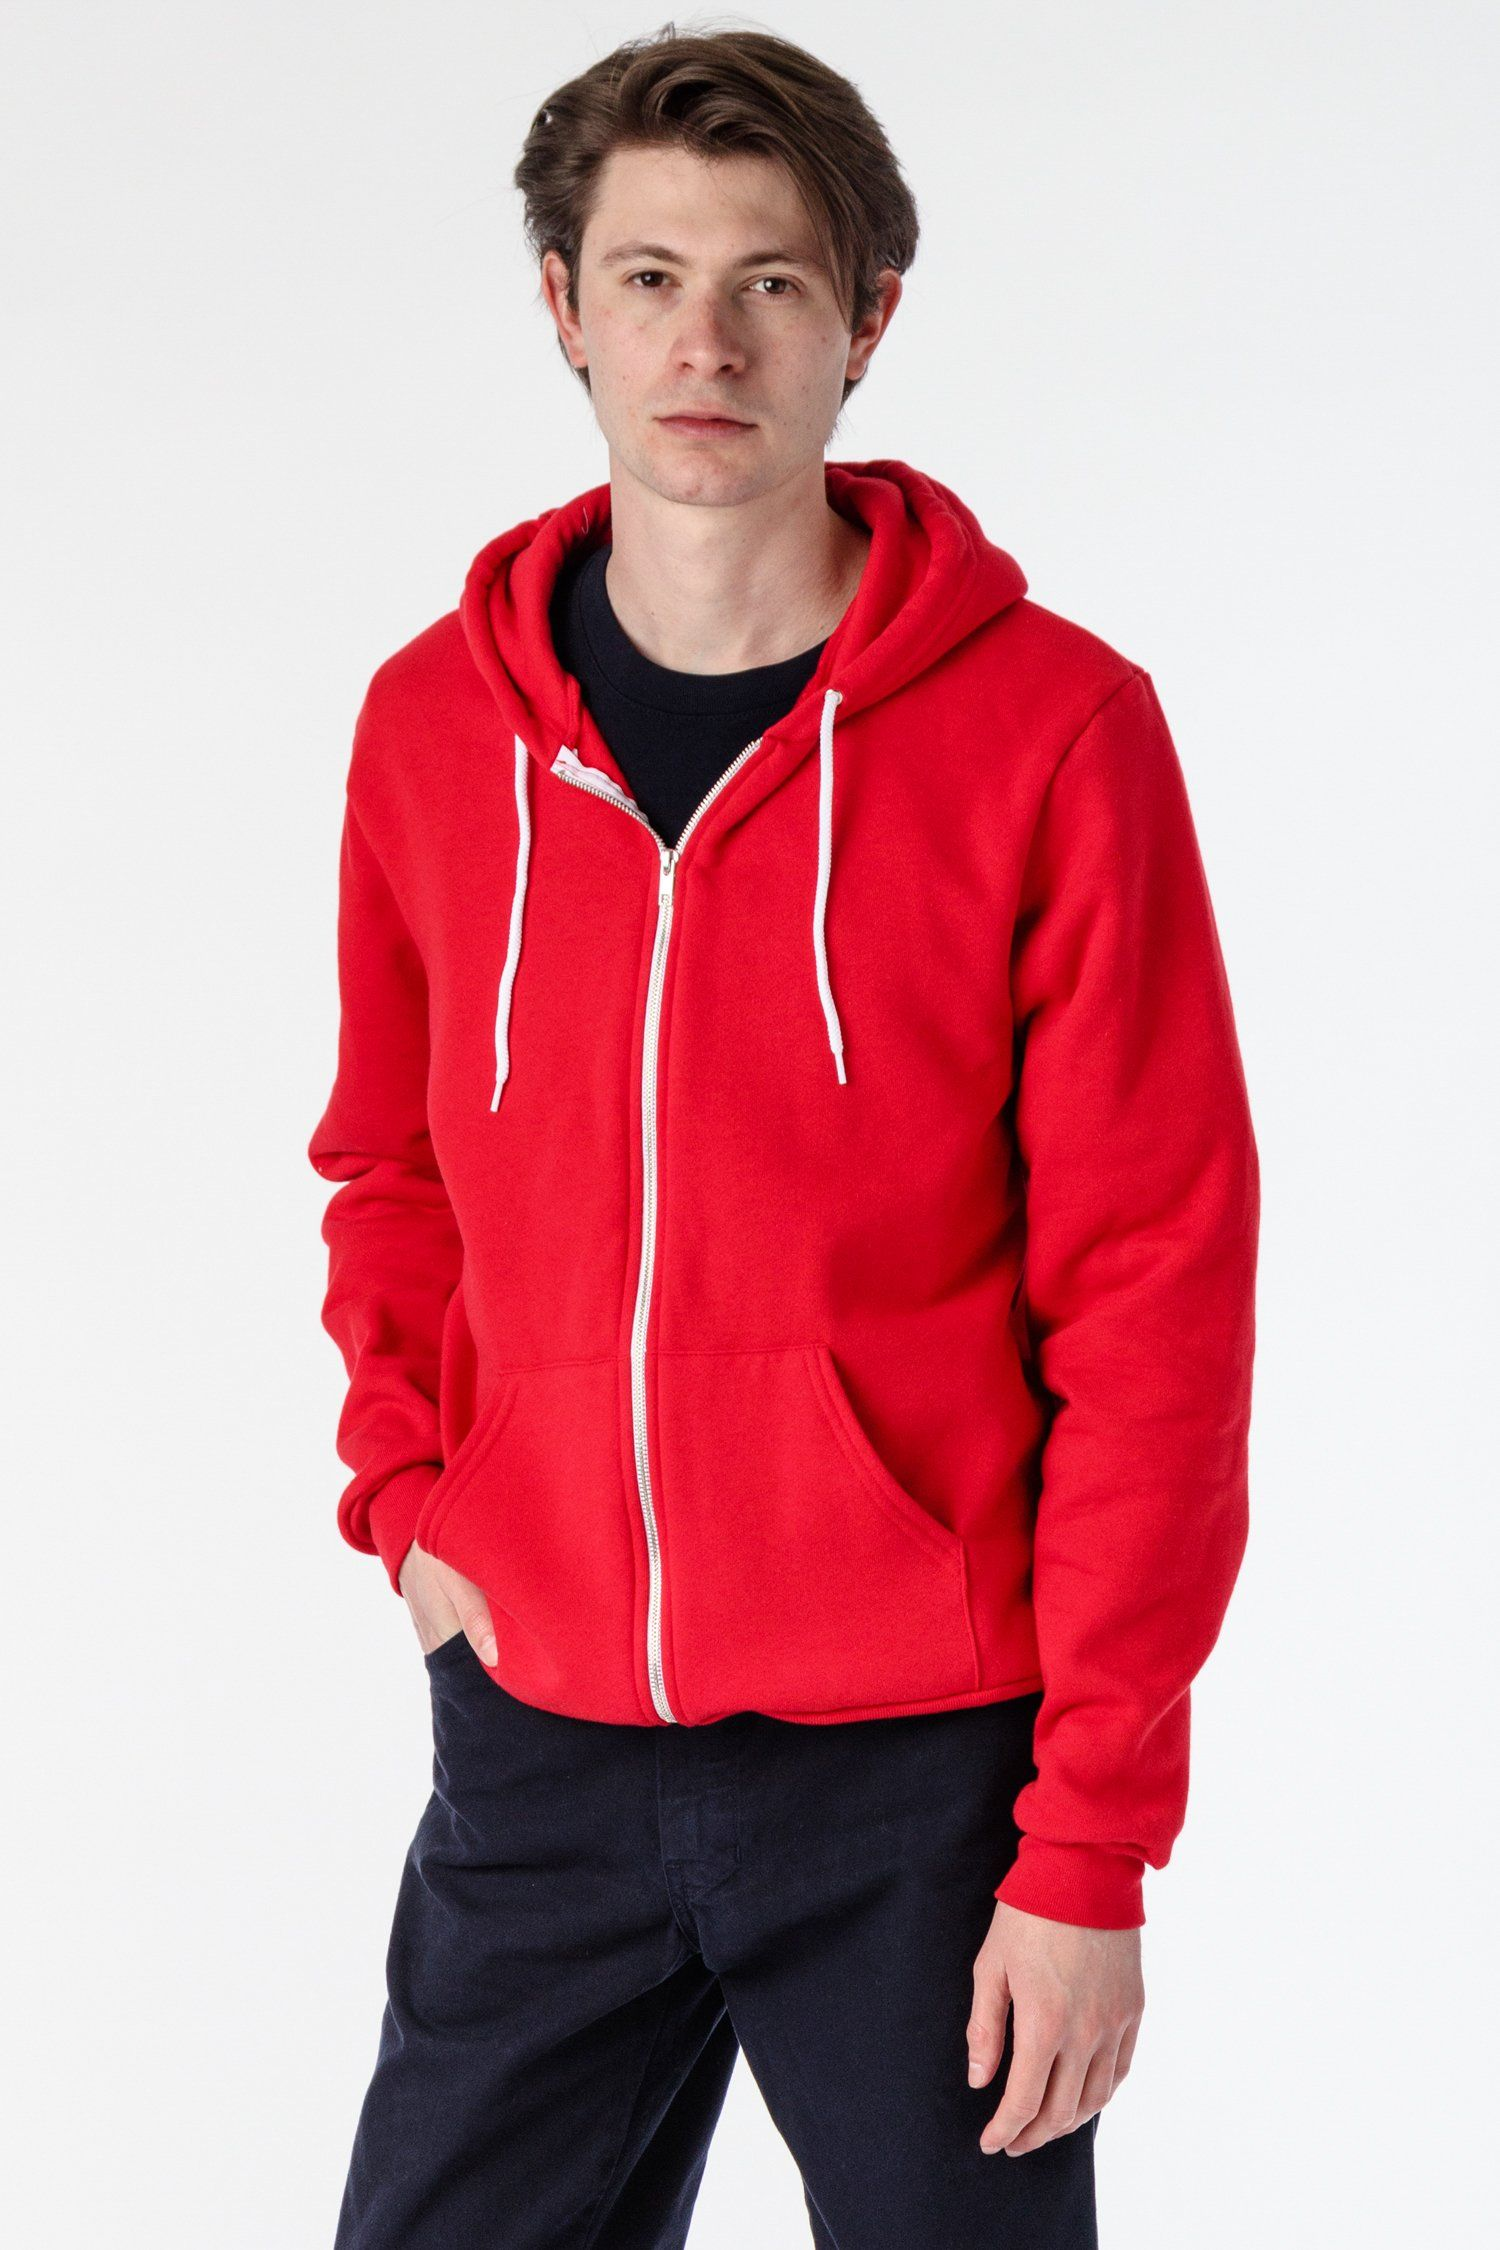 F97 Flex Fleece Zip Up Hoodie Hoodies Zip Ups Mens Sweatshirts